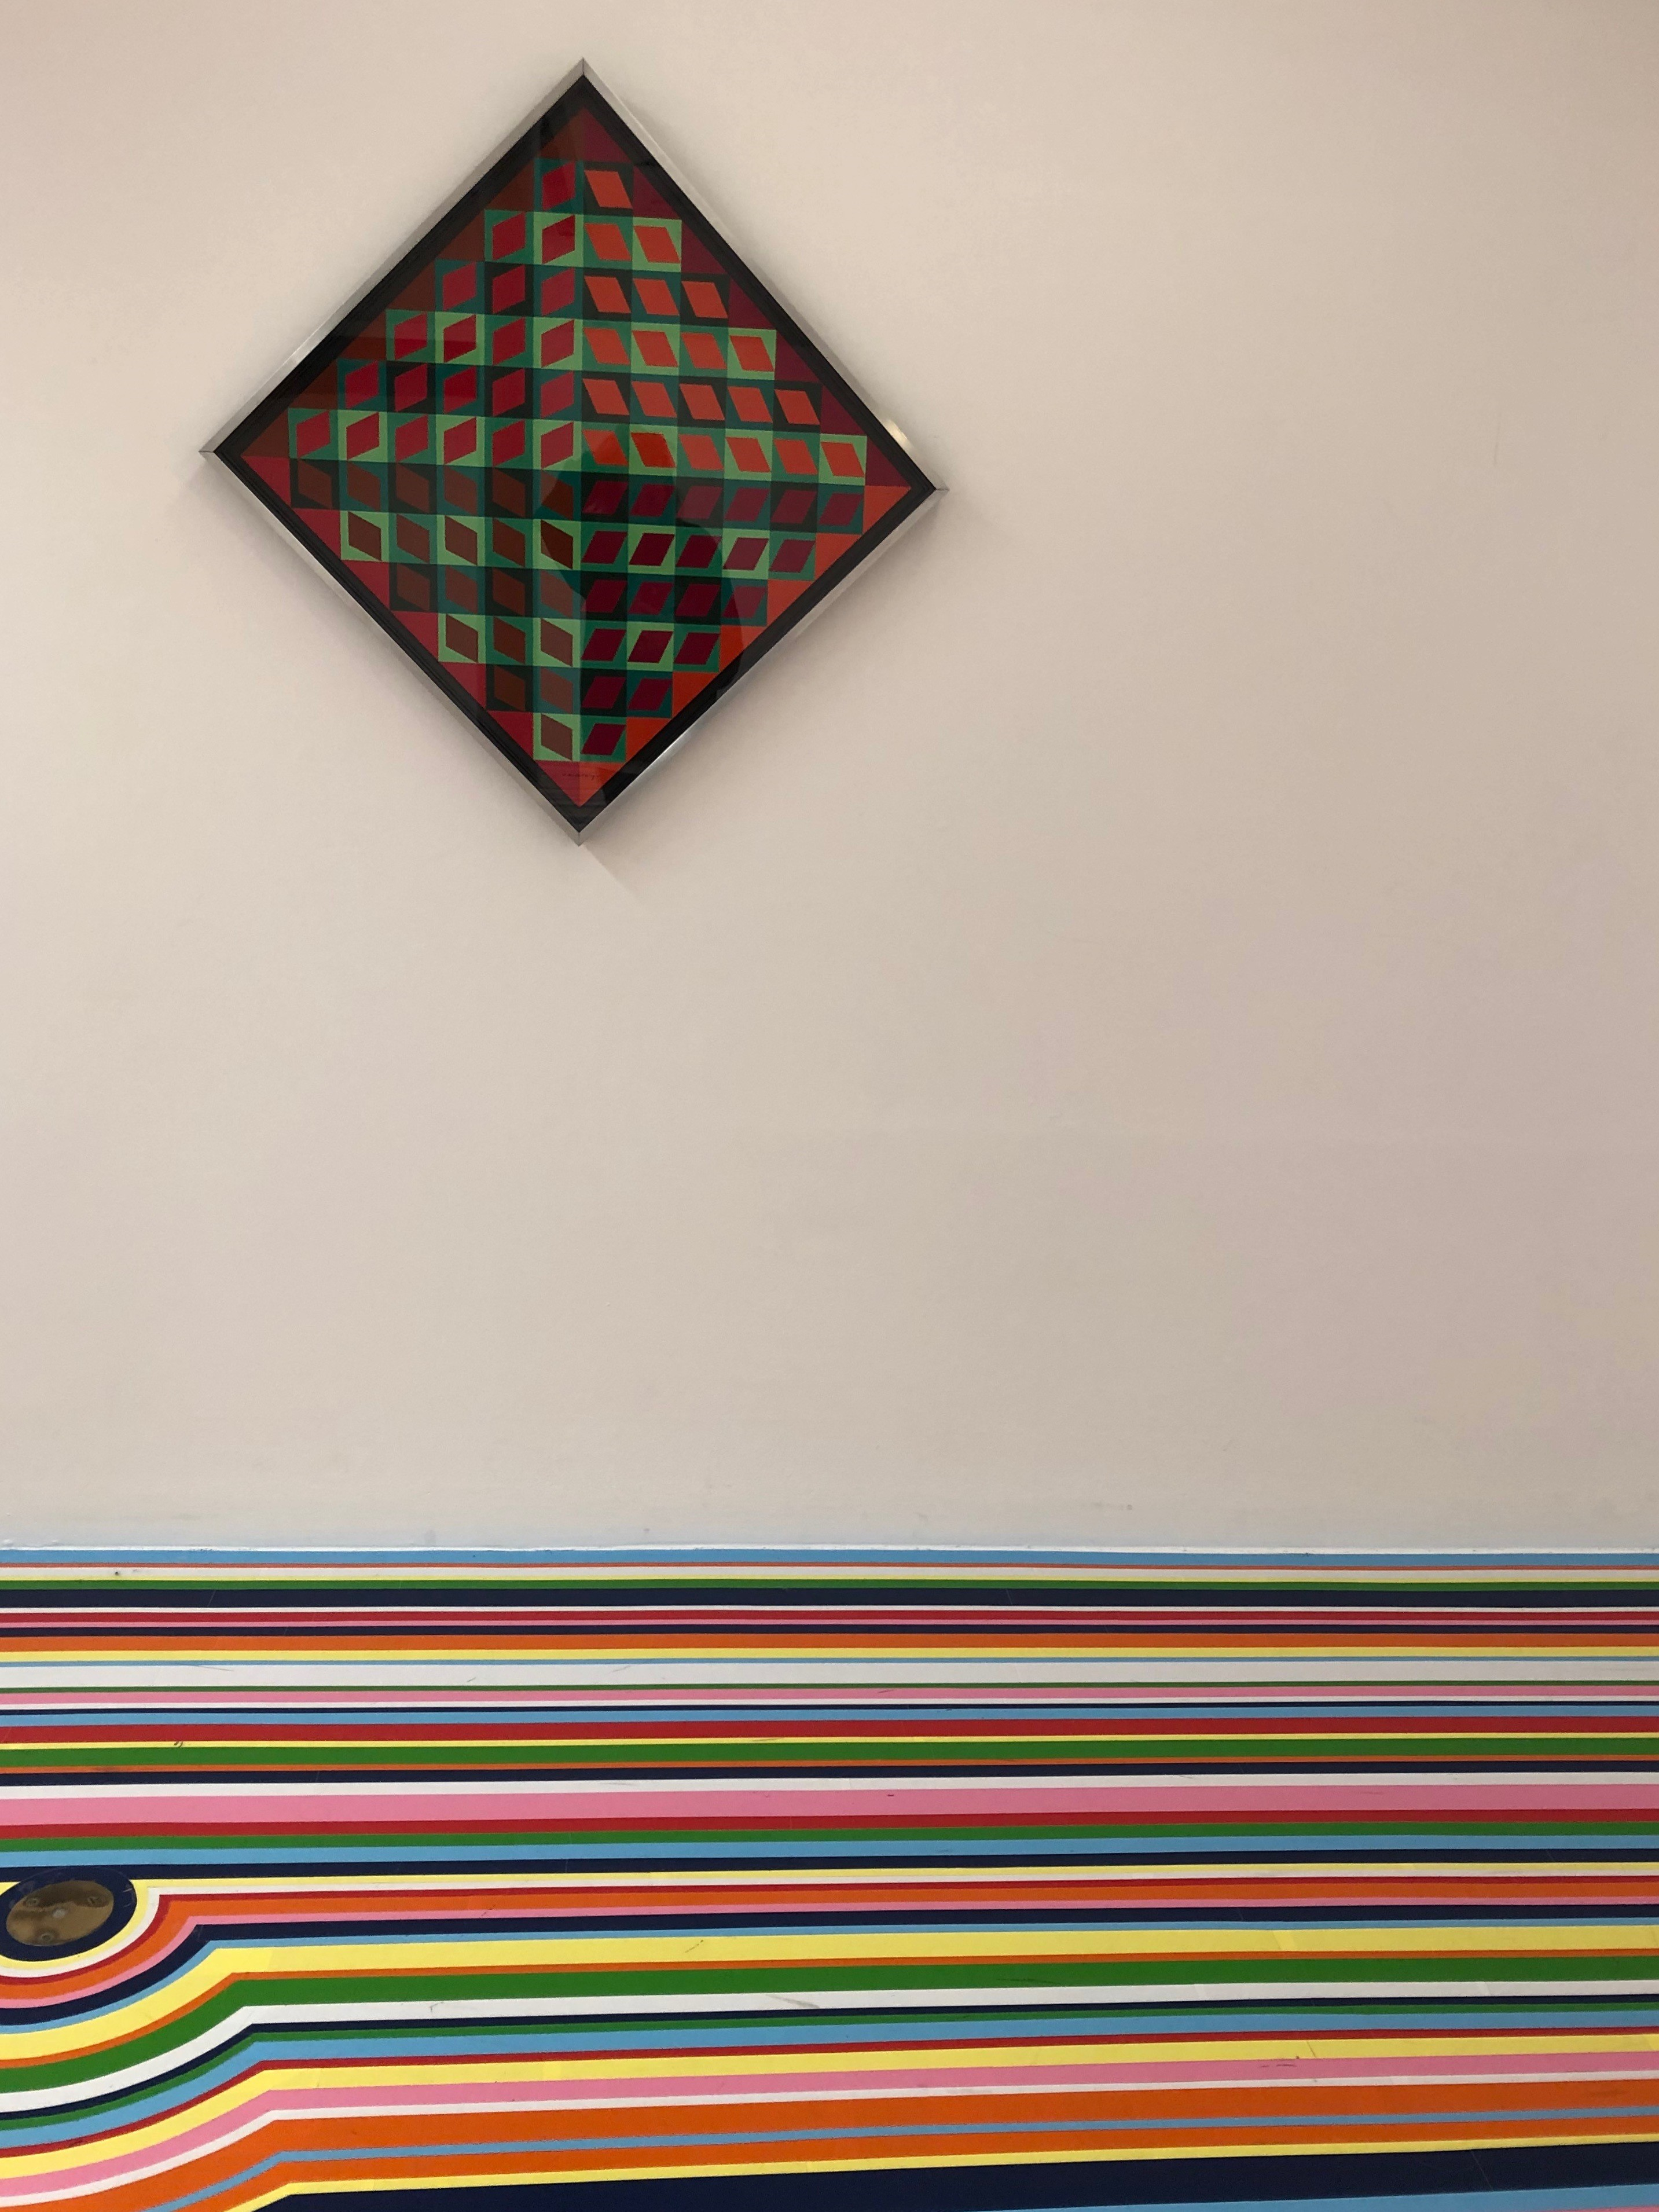 An exhibition at Tate Liverpool and vibrant flooring